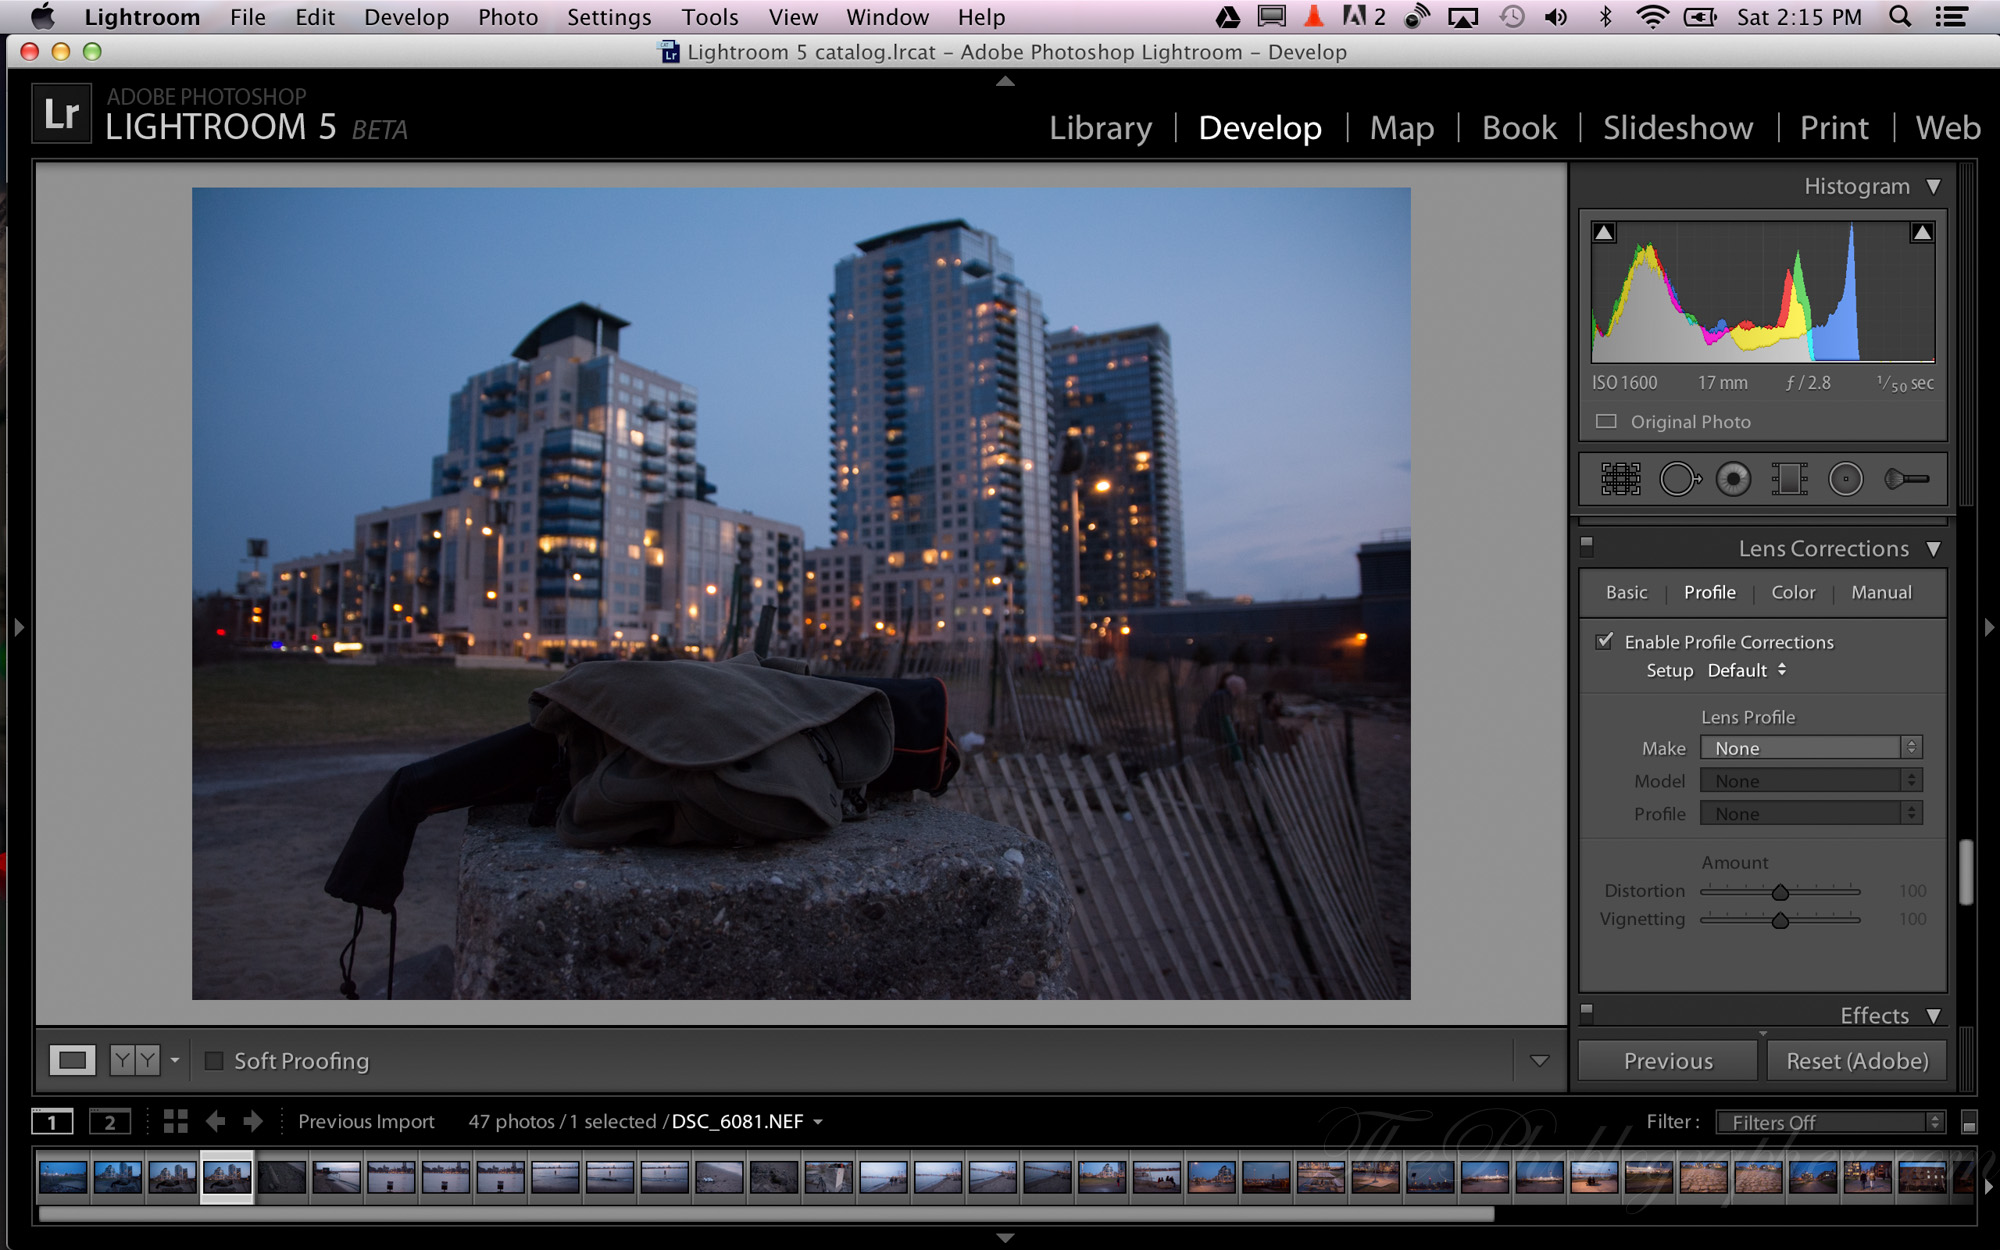 Photoshop cc photos download free full version with crack 32 bit